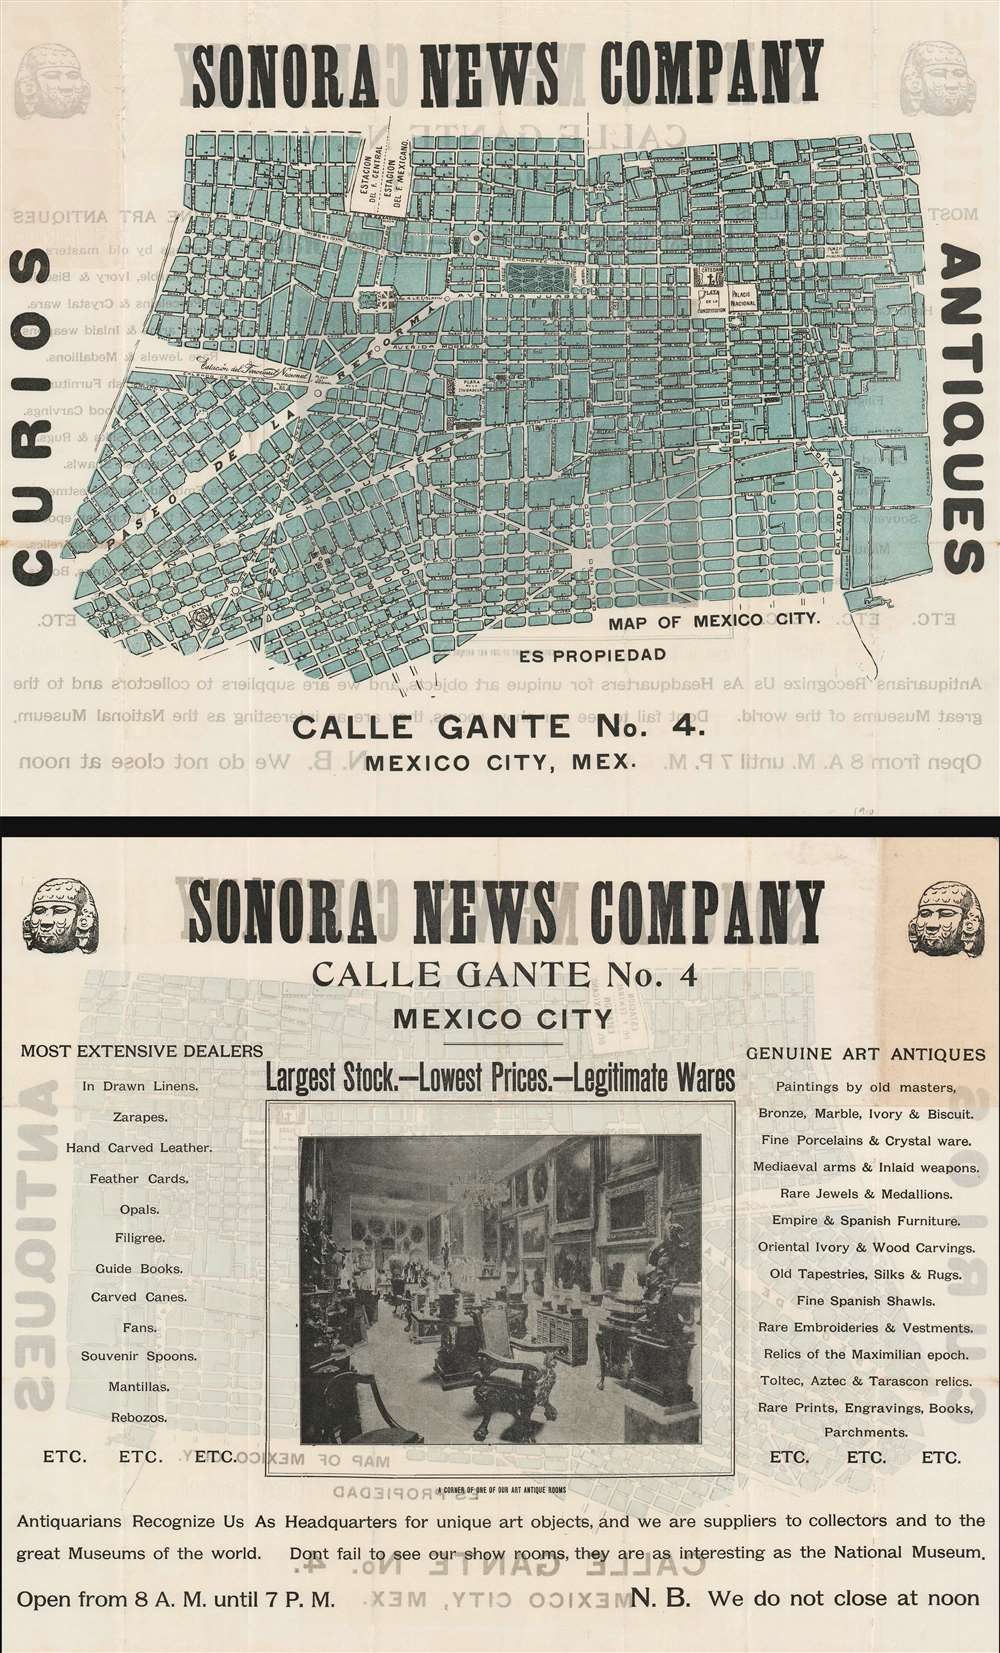 Sonora News Company. Map of Mexico City. - Main View